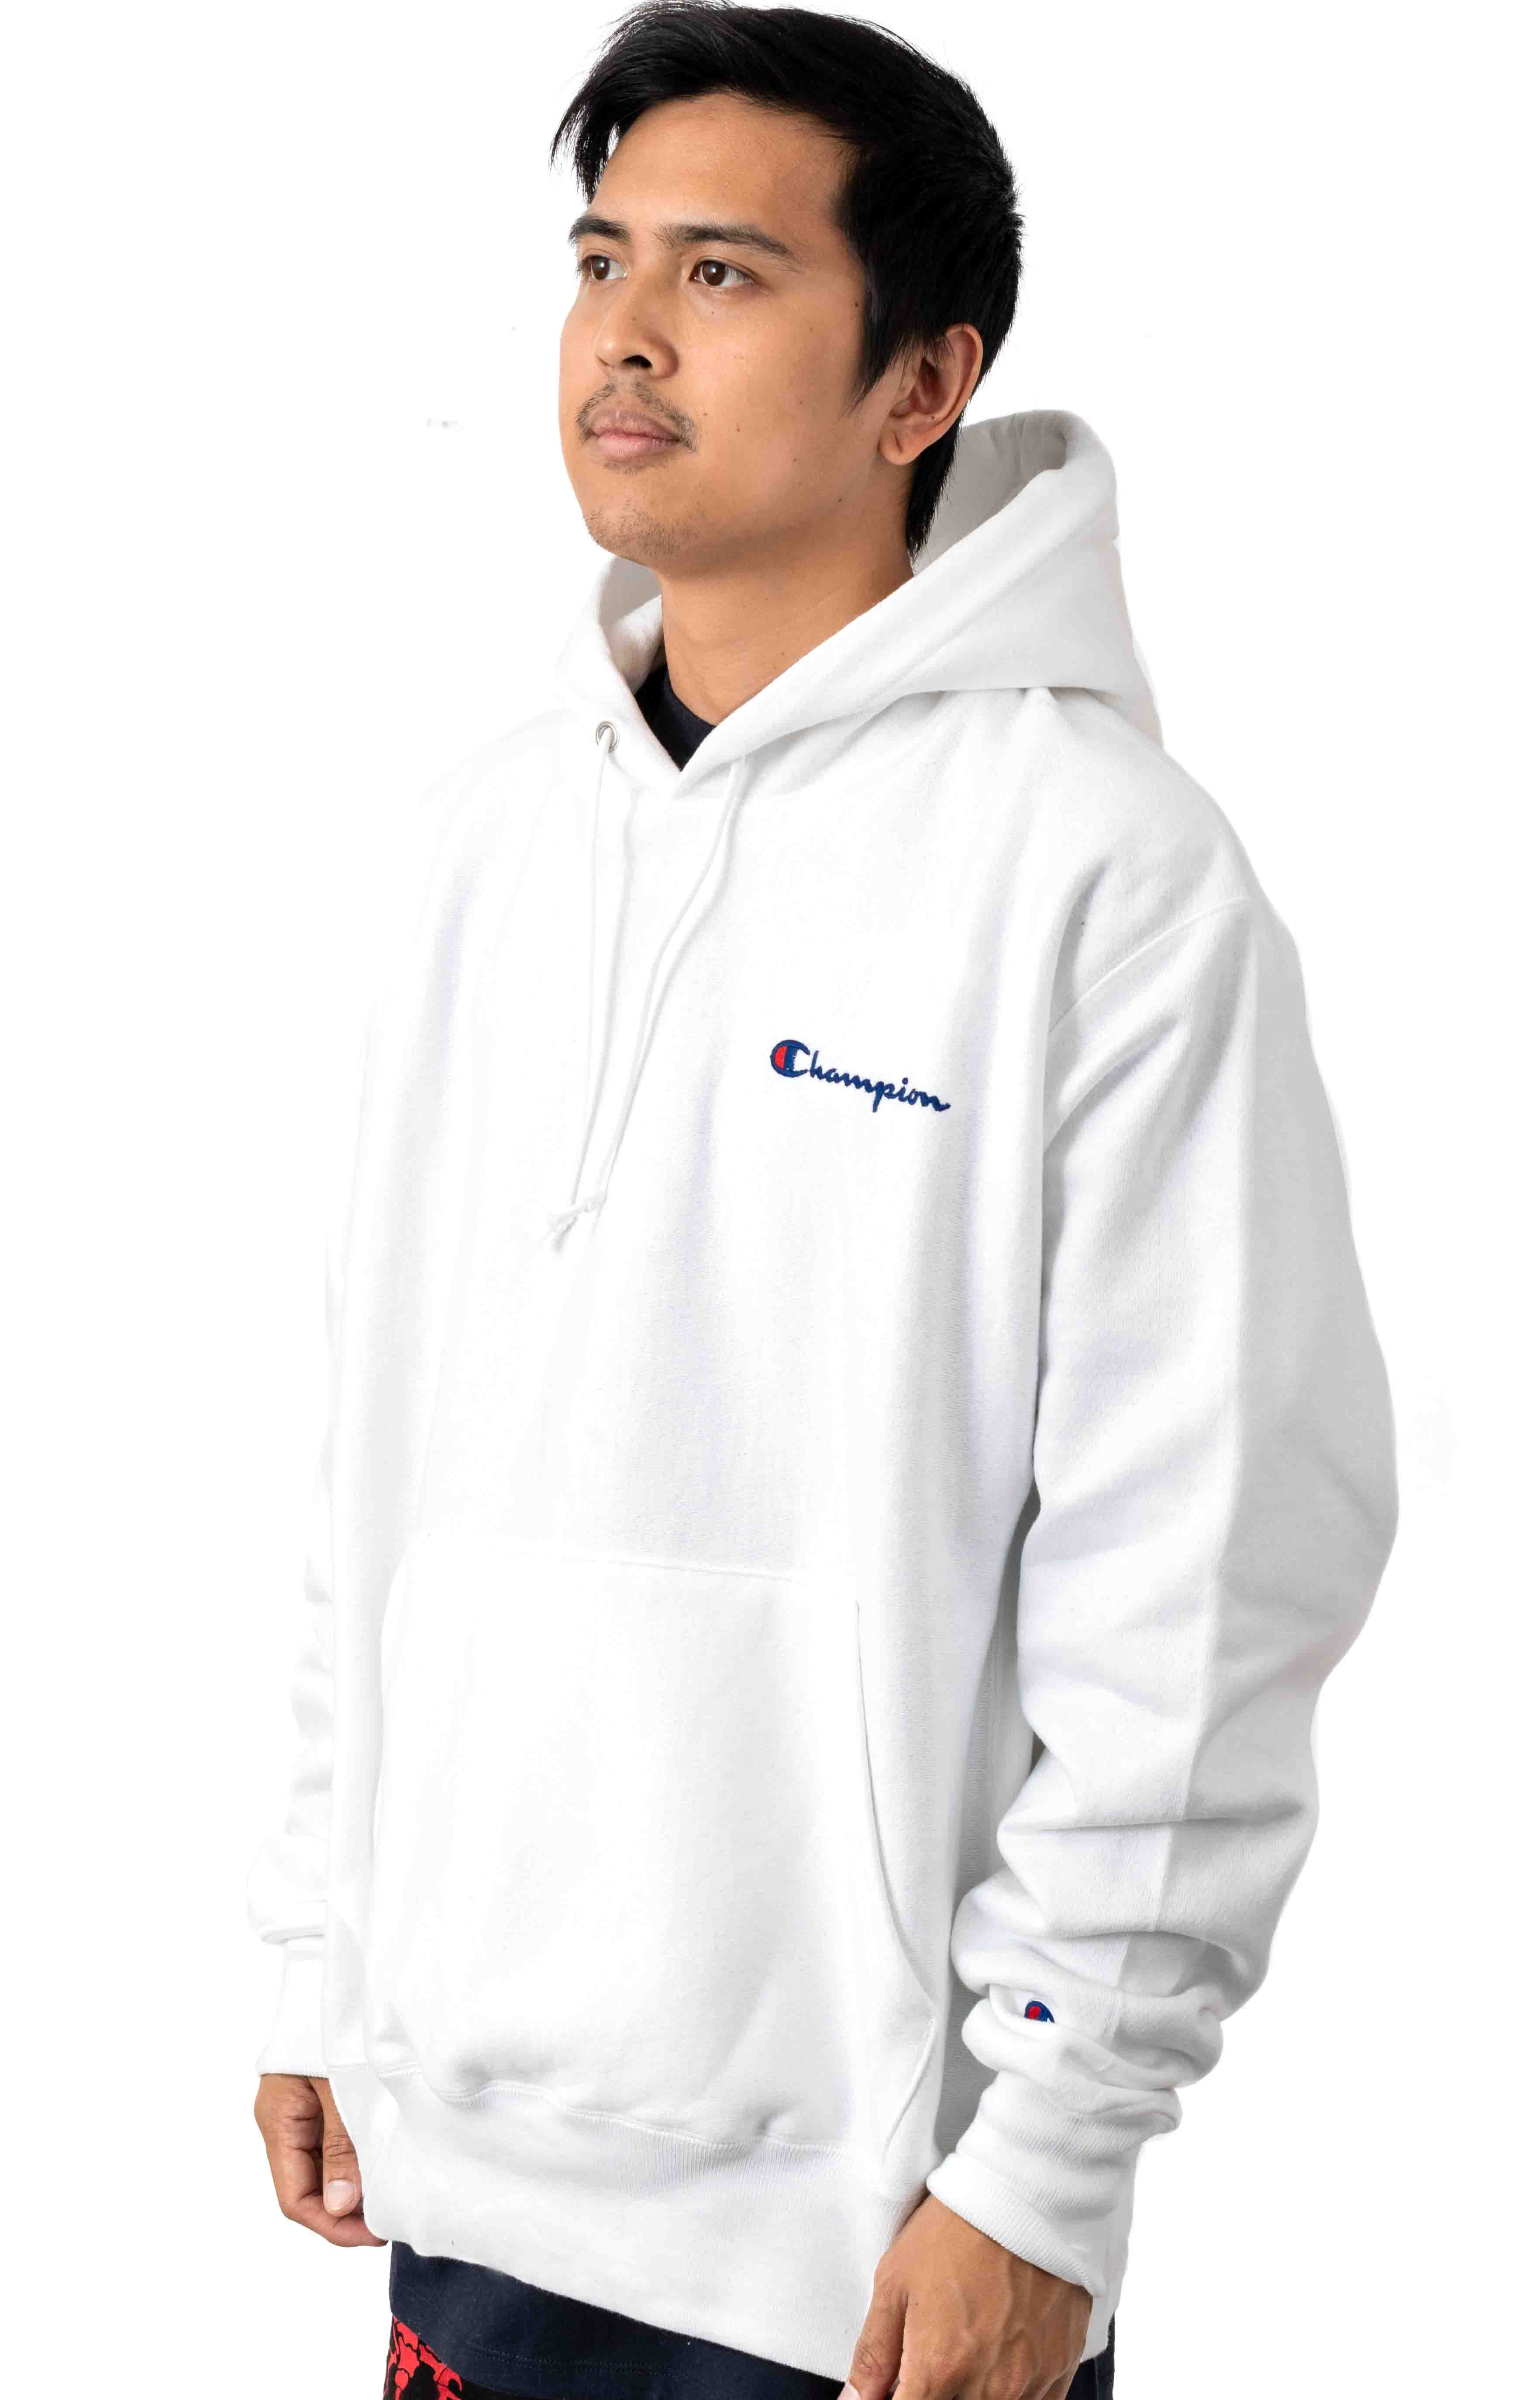 Reverse Weave Embroidered Script Pullover Hoodie - White  2